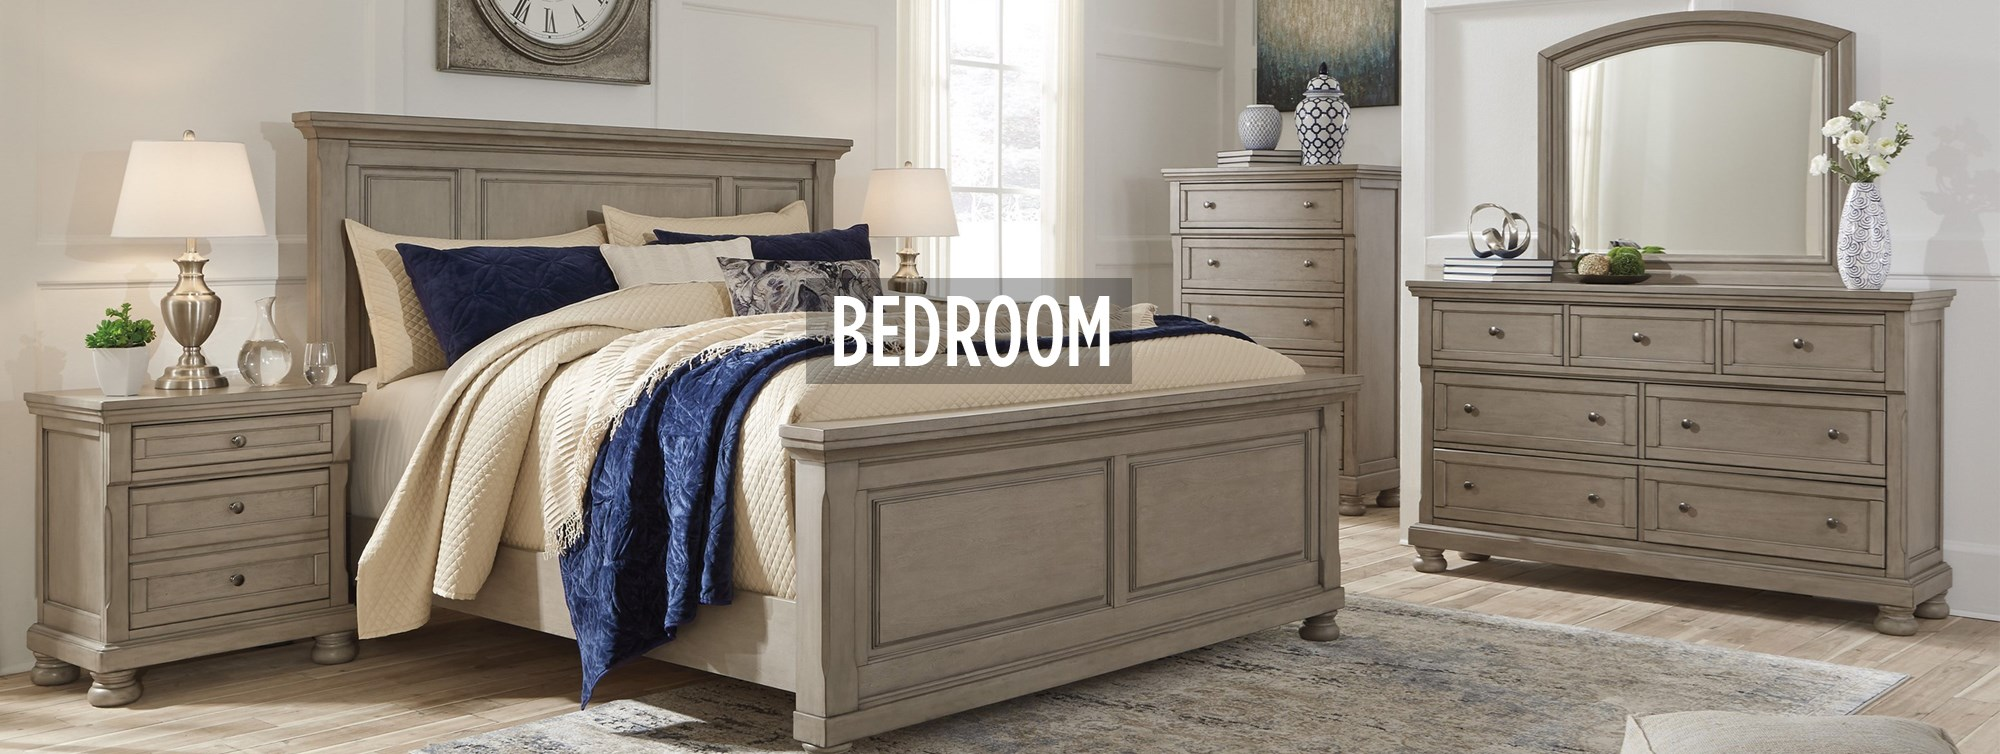 6f46d43e17d Shop Bedroom Furniture | John V Schultz Furniture | Erie, Meadville ...